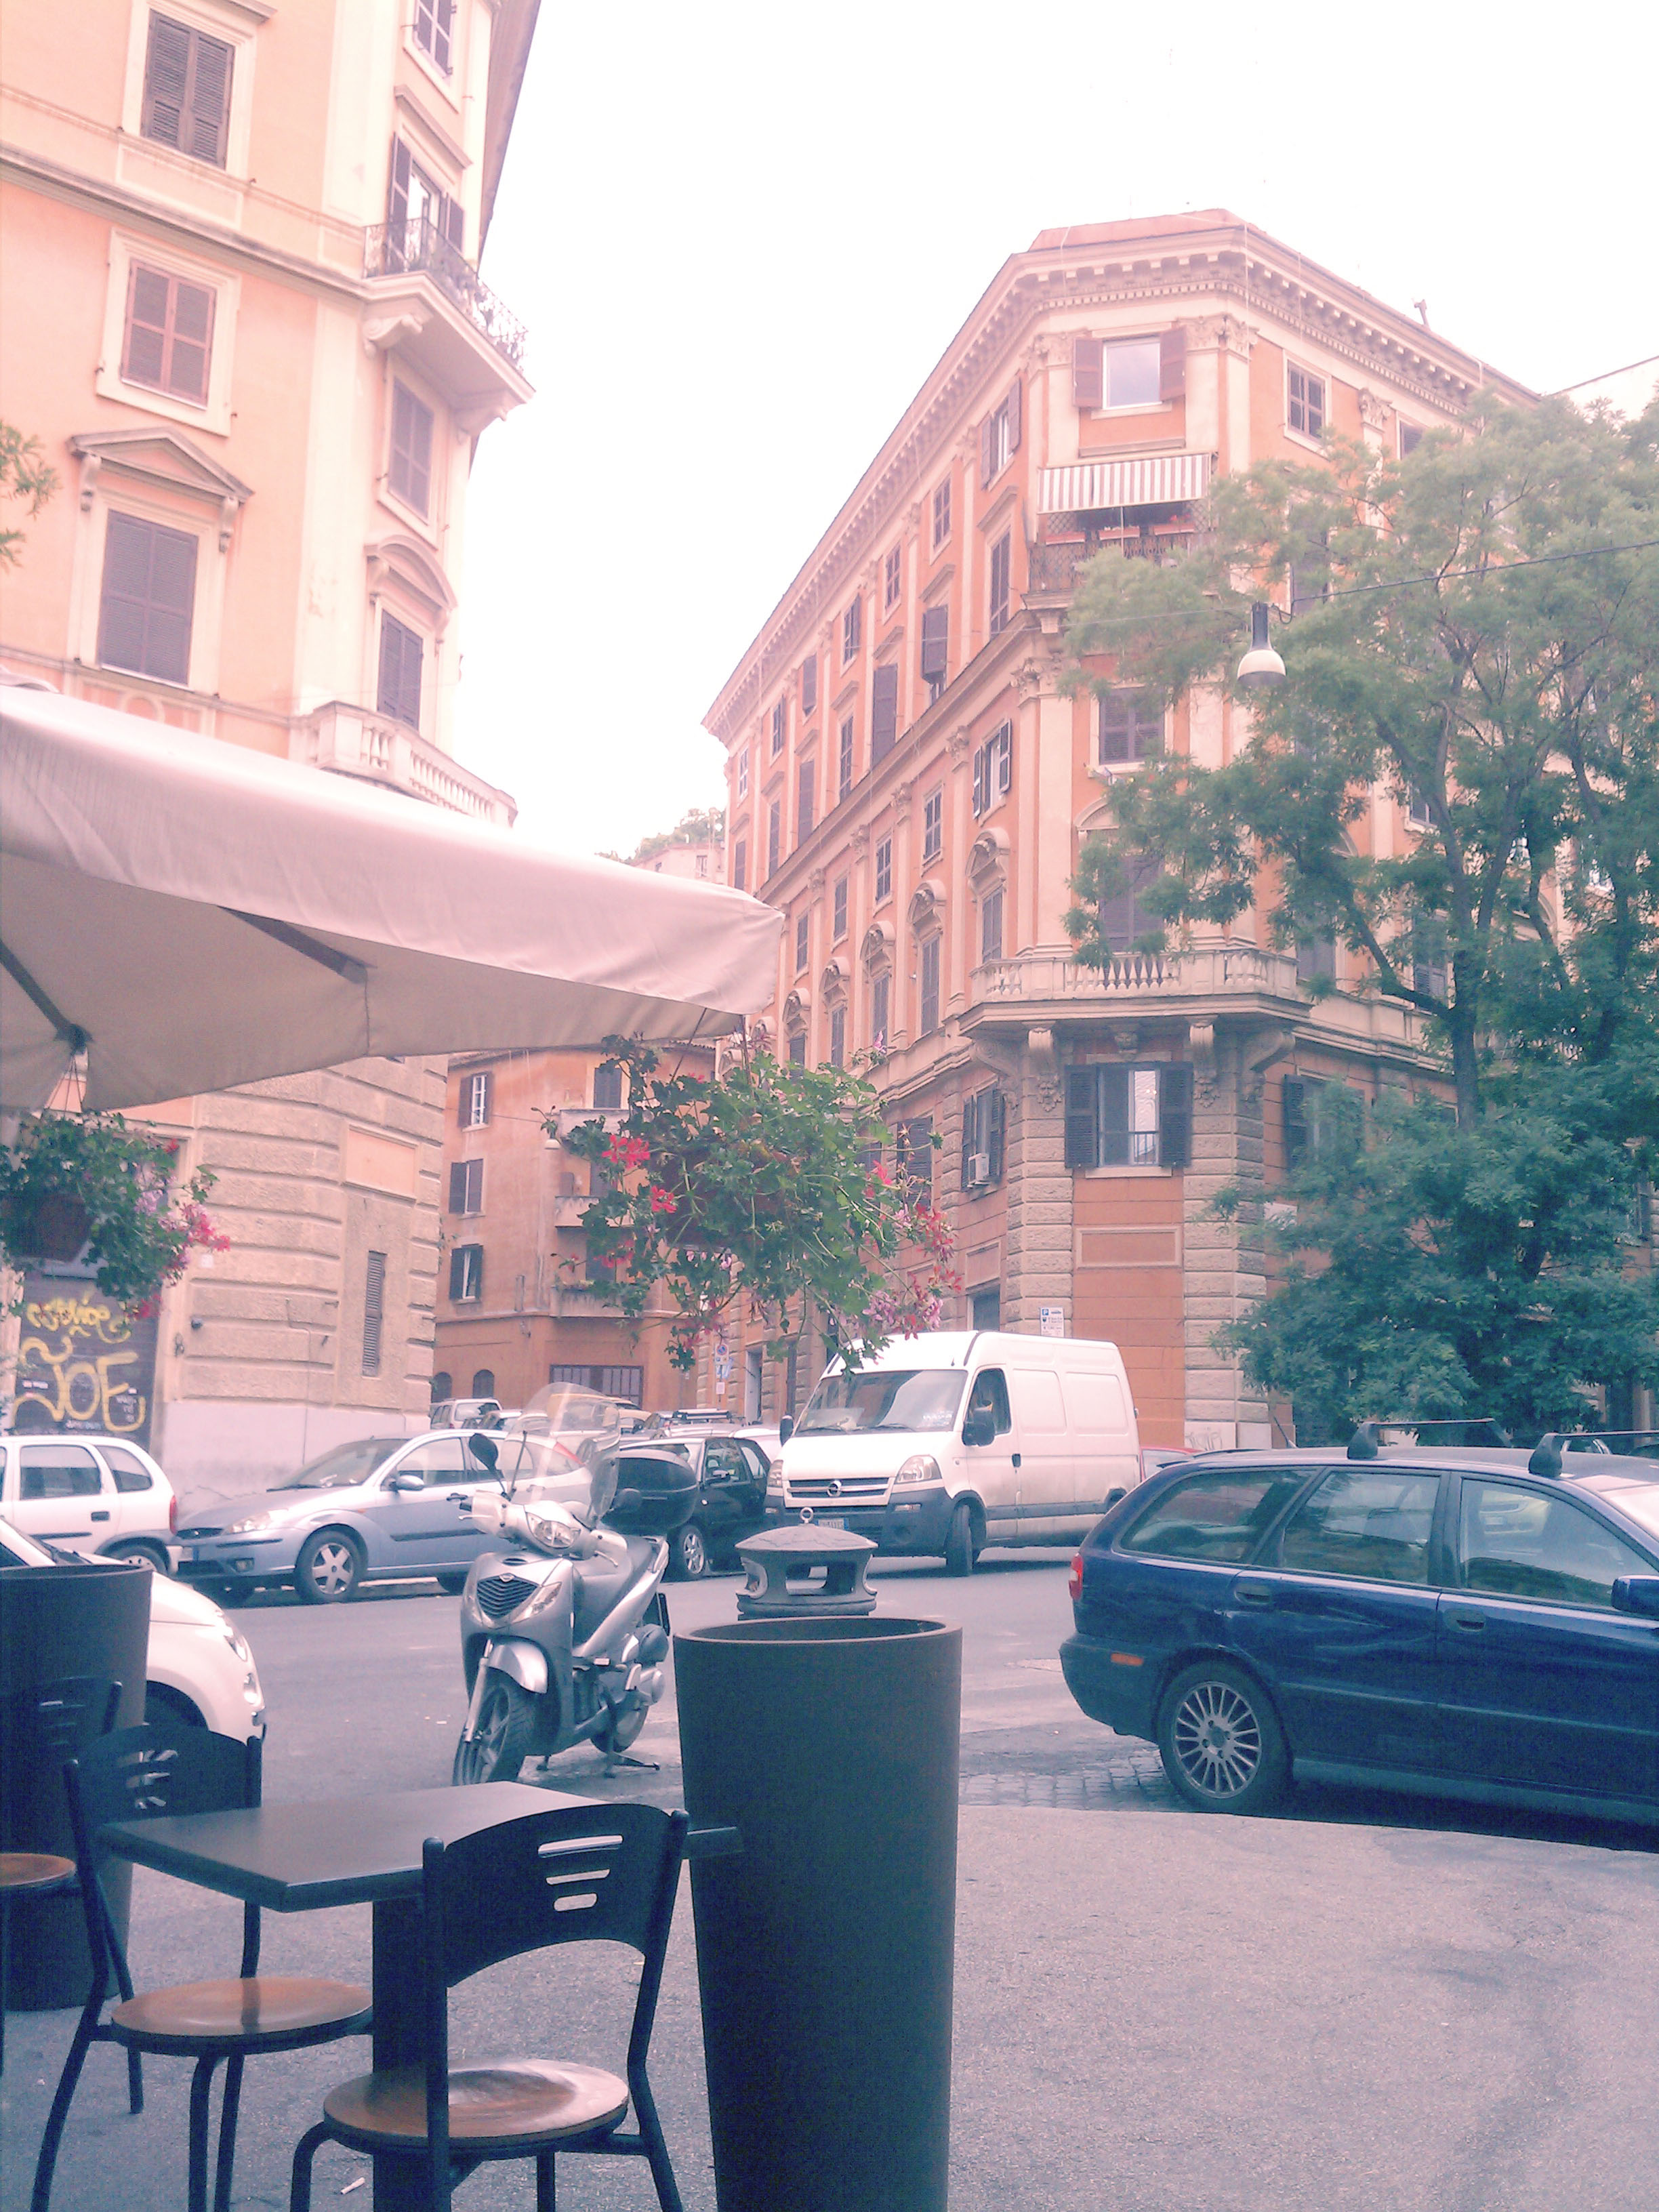 The street corner where I had my cappuccino every morning (if i wasn't running late for class).